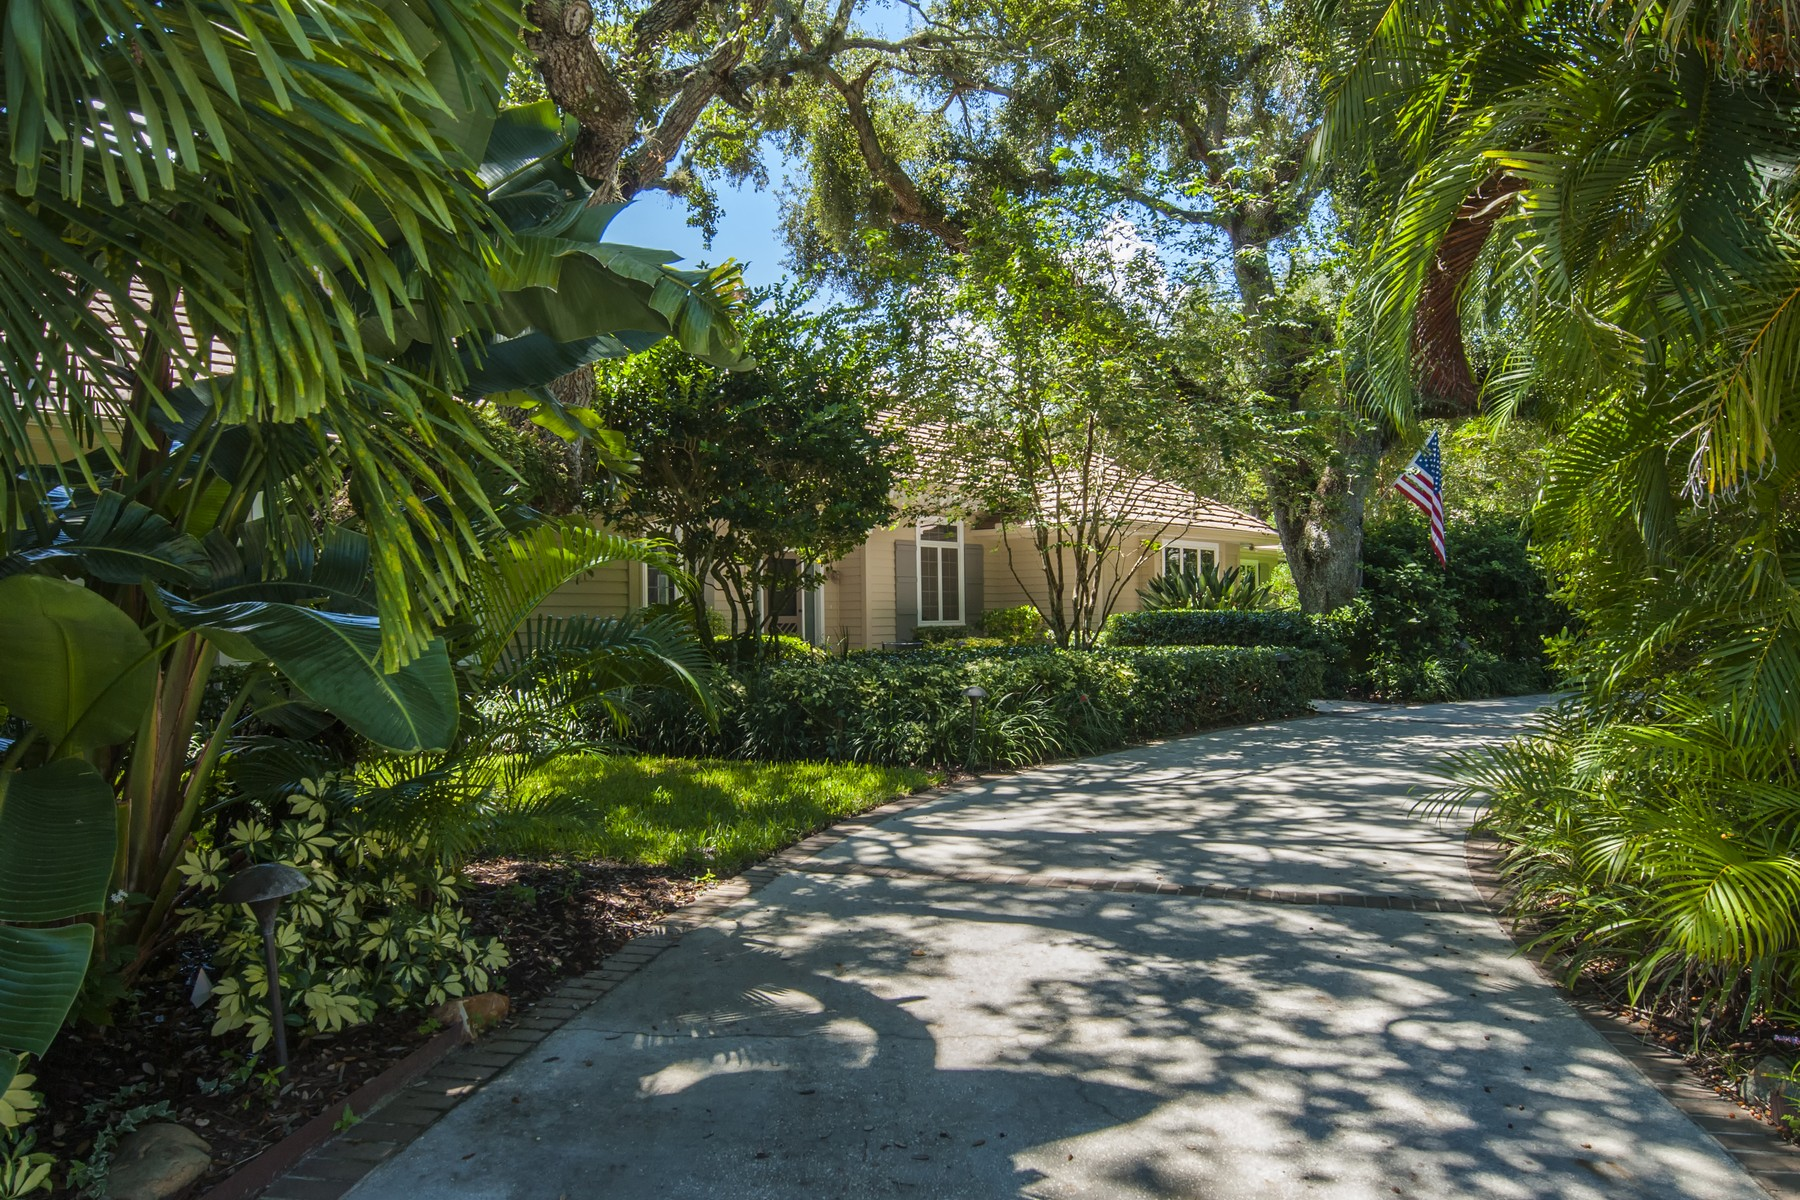 Single Family Home for Sale at Elegant Pool Home with Ocean to River Amenities 501 Marbrisa Drive Vero Beach, Florida 32963 United States